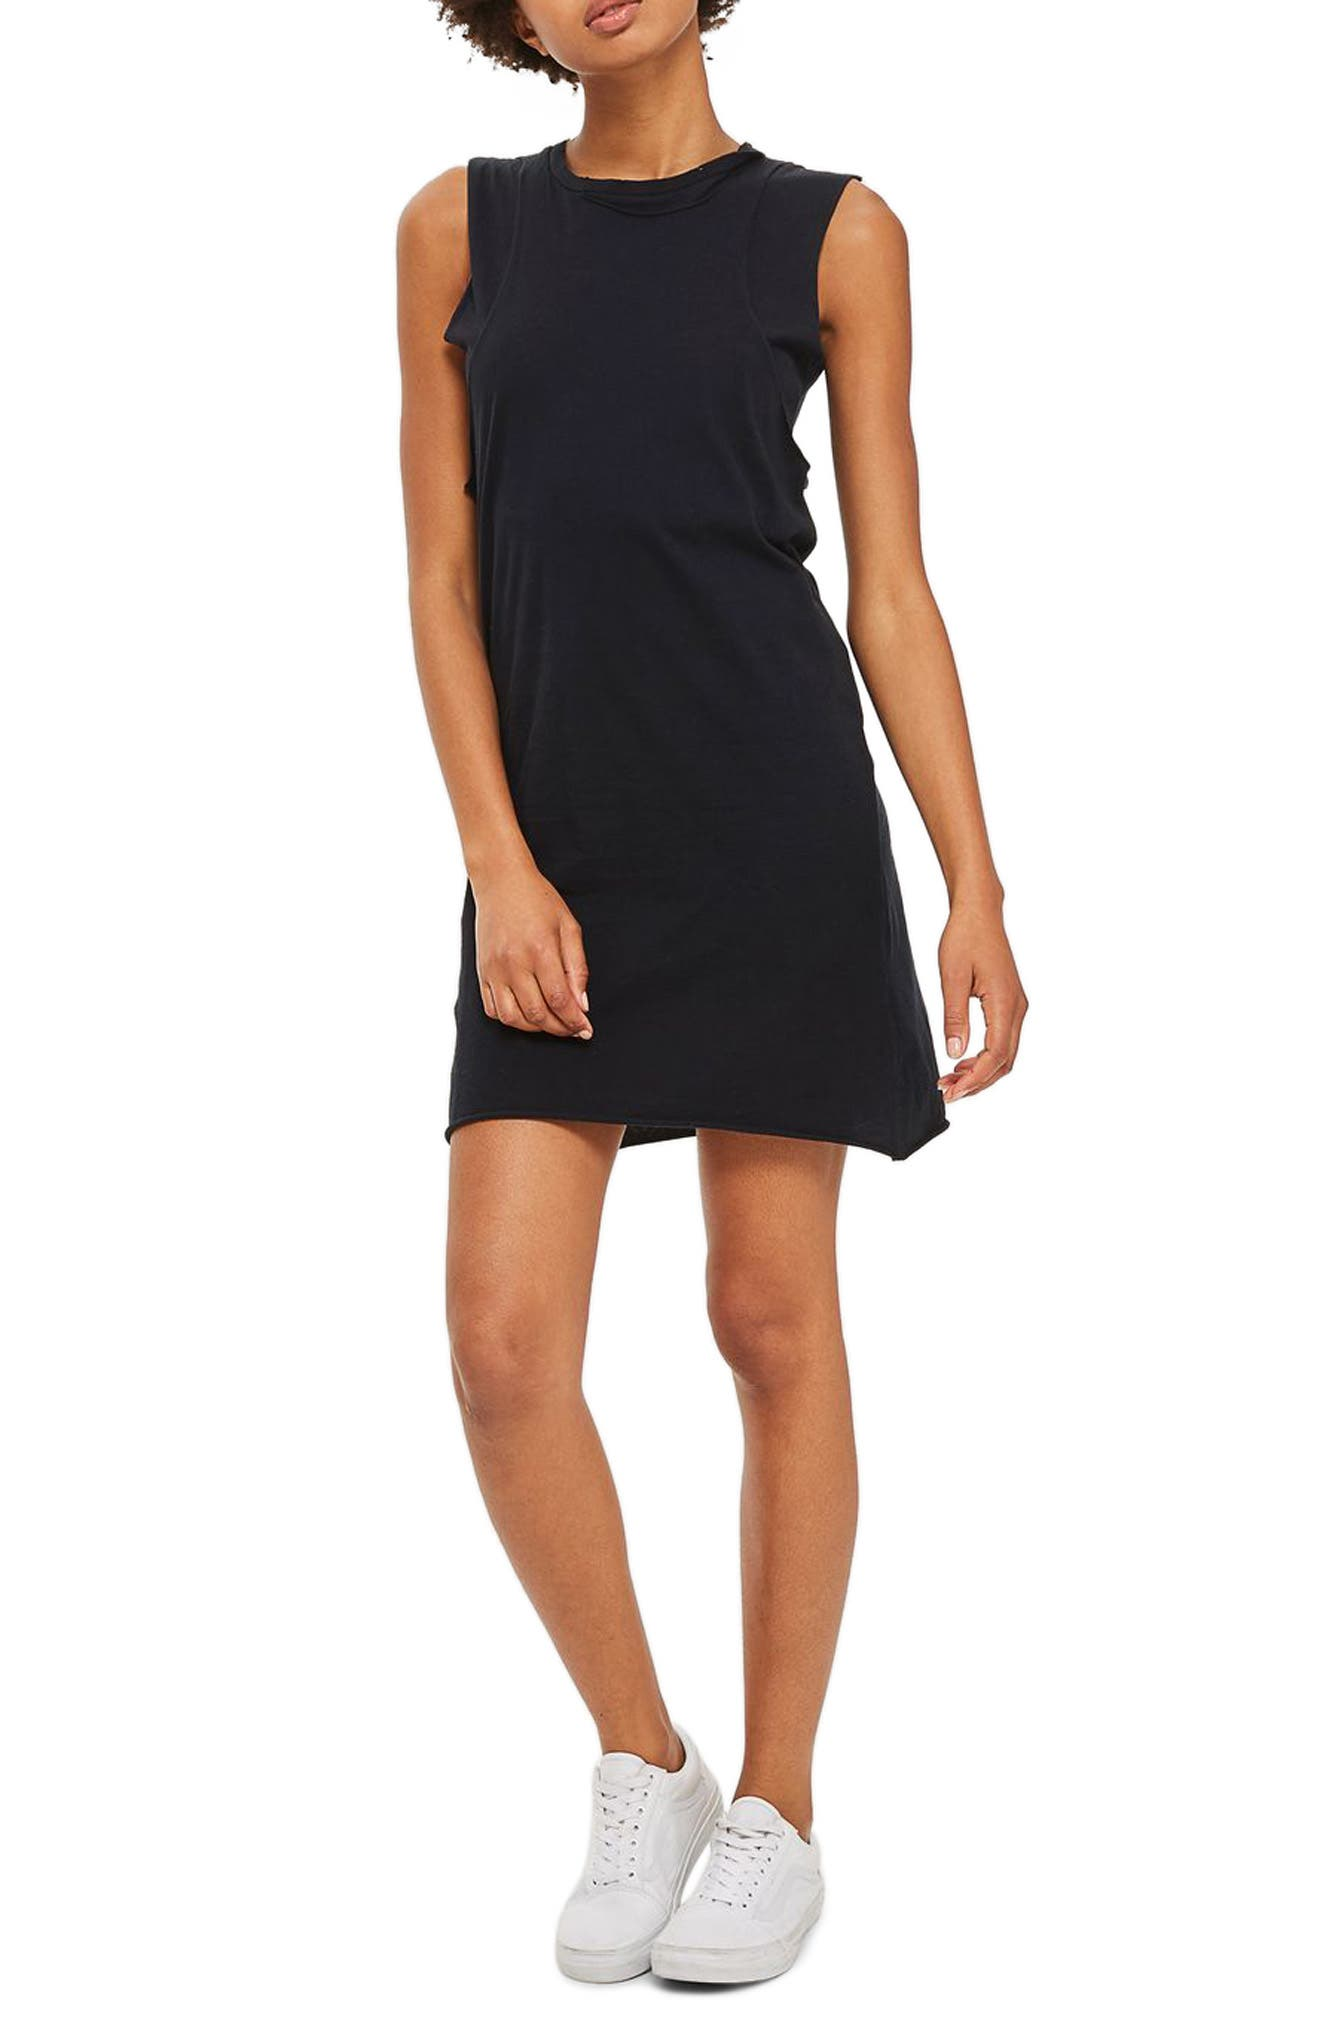 Topshop Layered Tank Dress